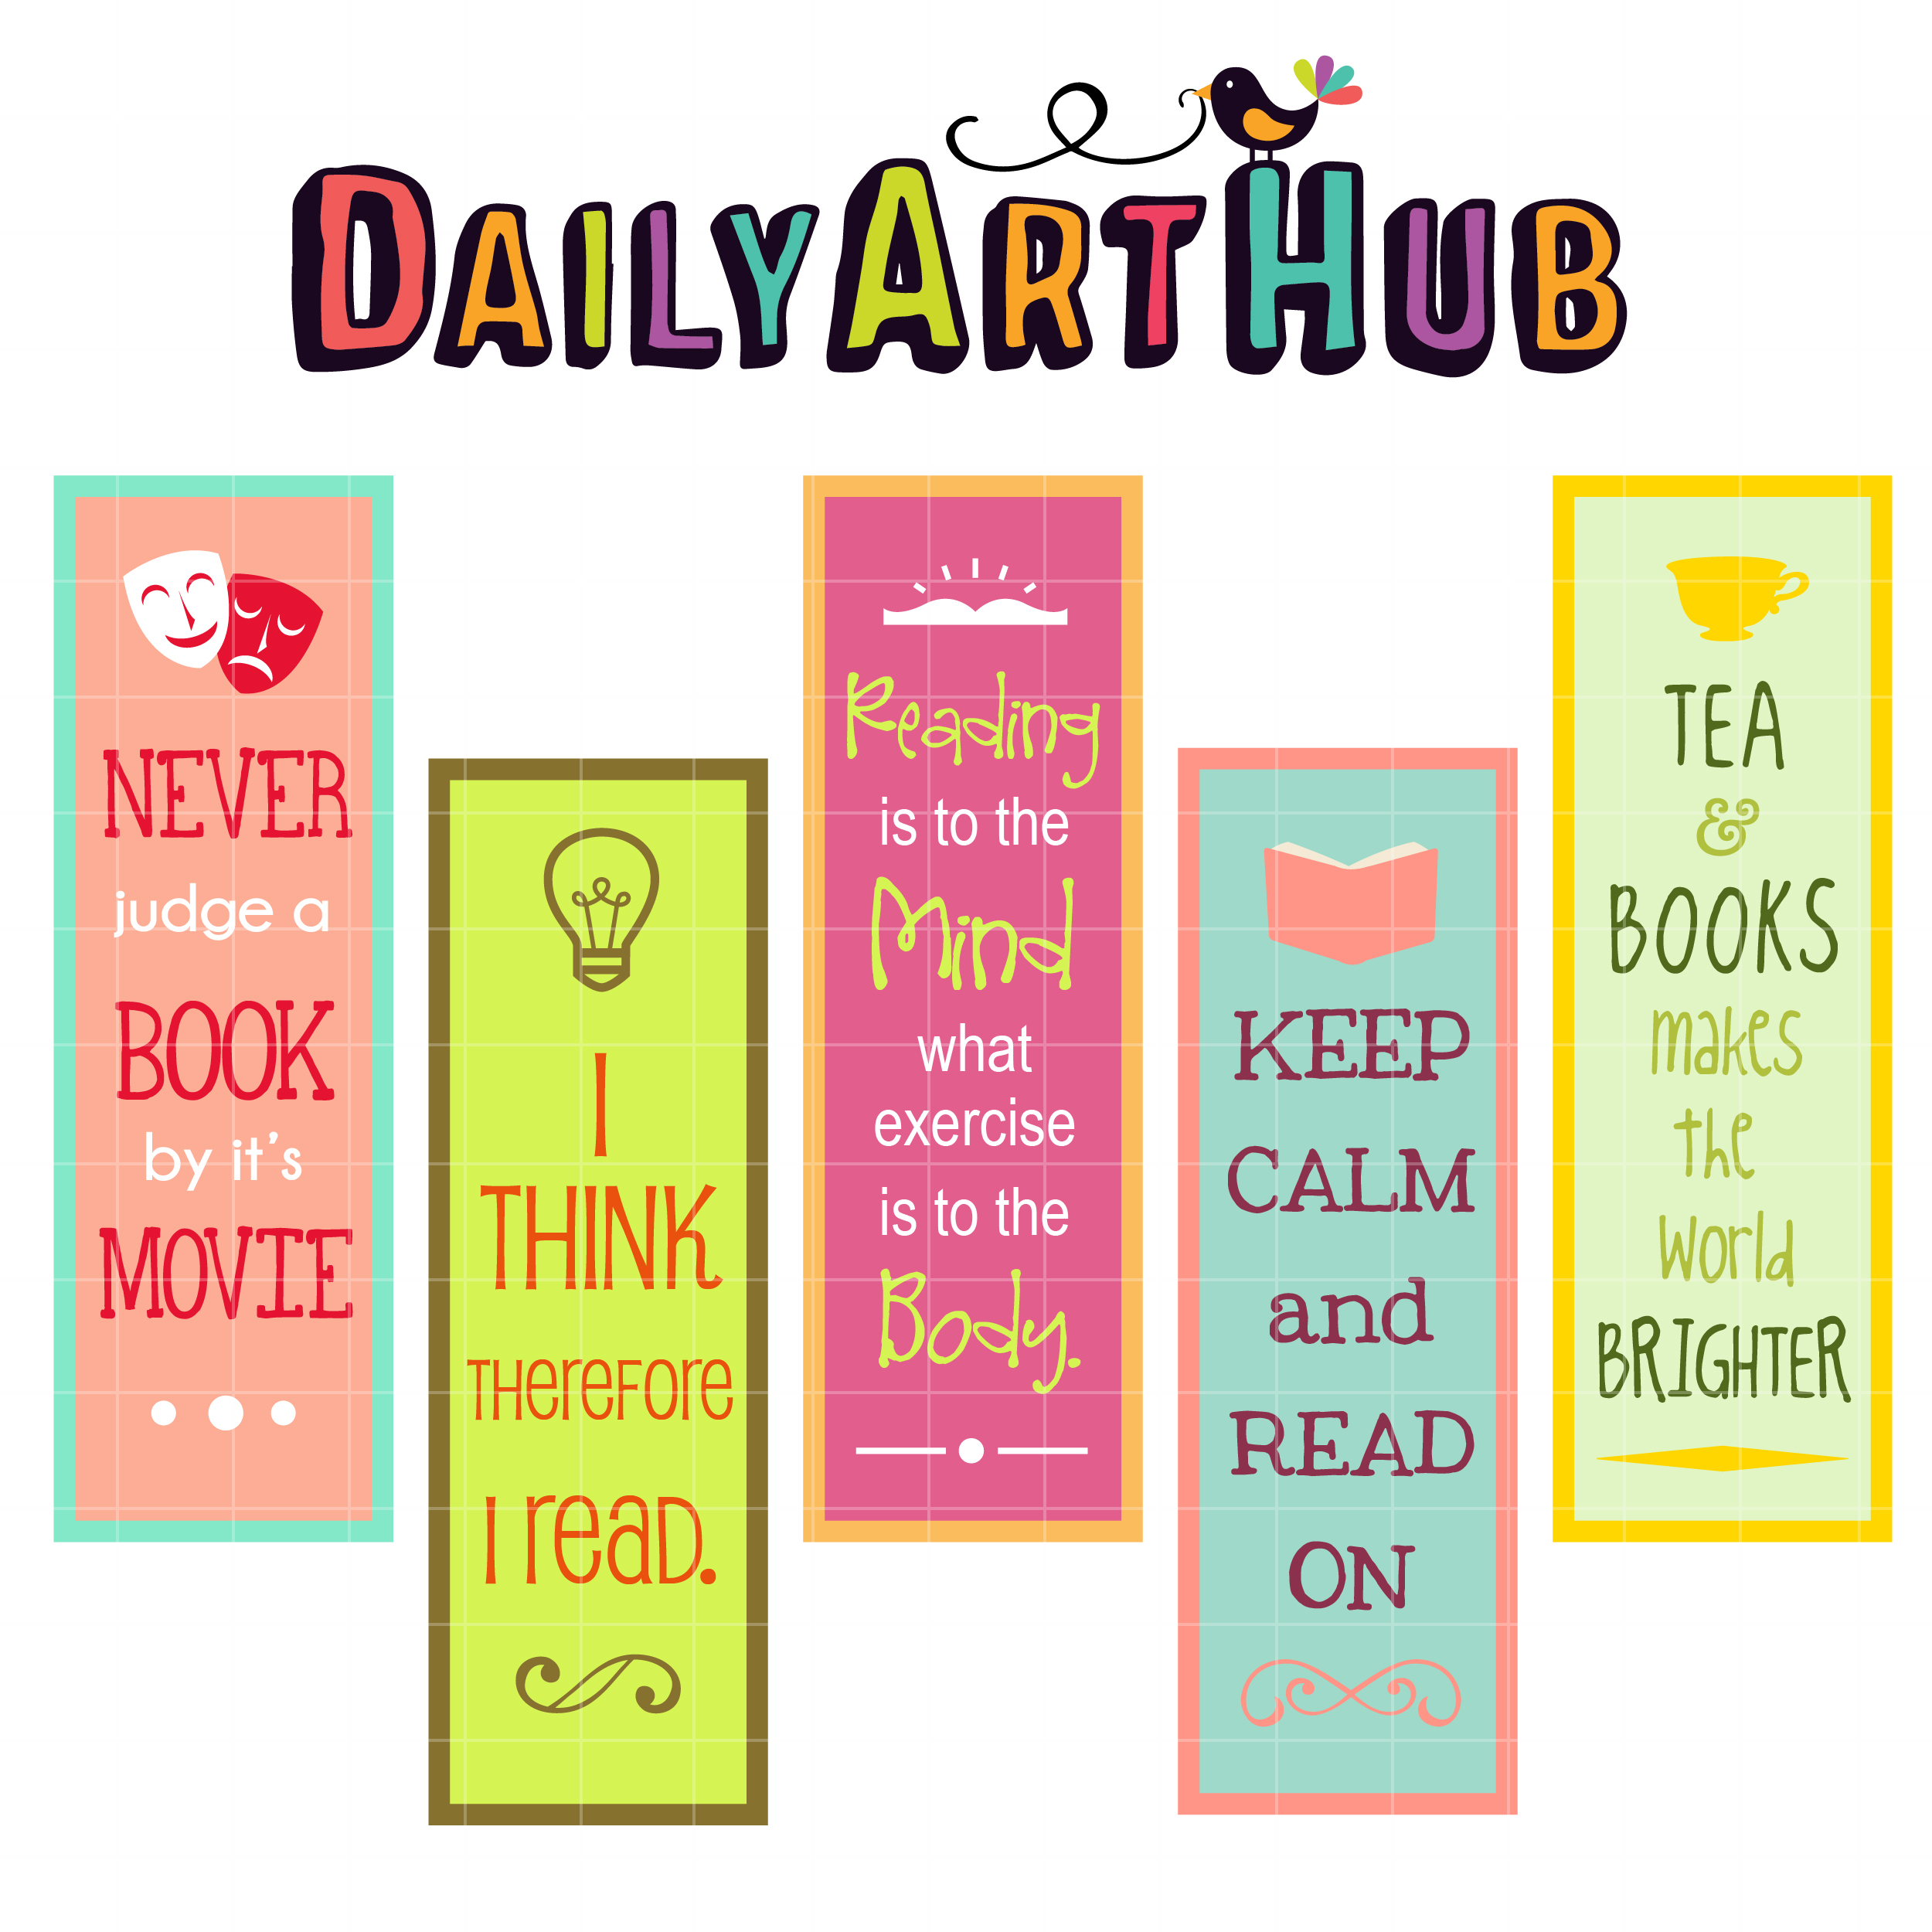 2500x2500 Reaading Quotes Bookmarks Clip Art Set Daily Art Hub Free Clip